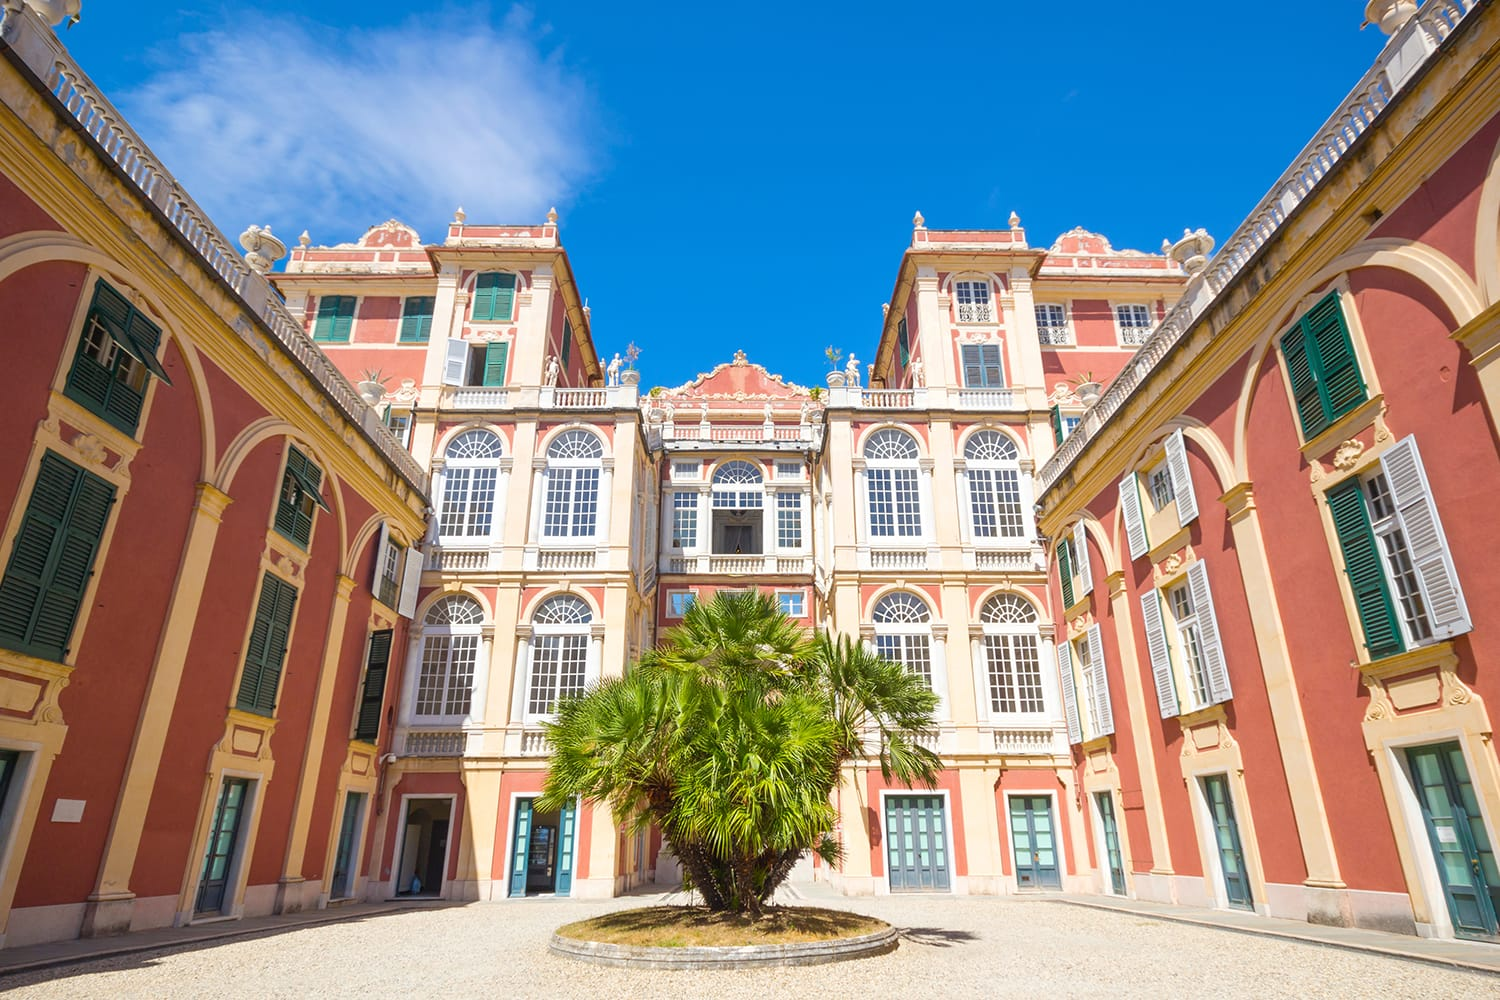 Courtyard of Palazzo Reale in Genoa, Italy